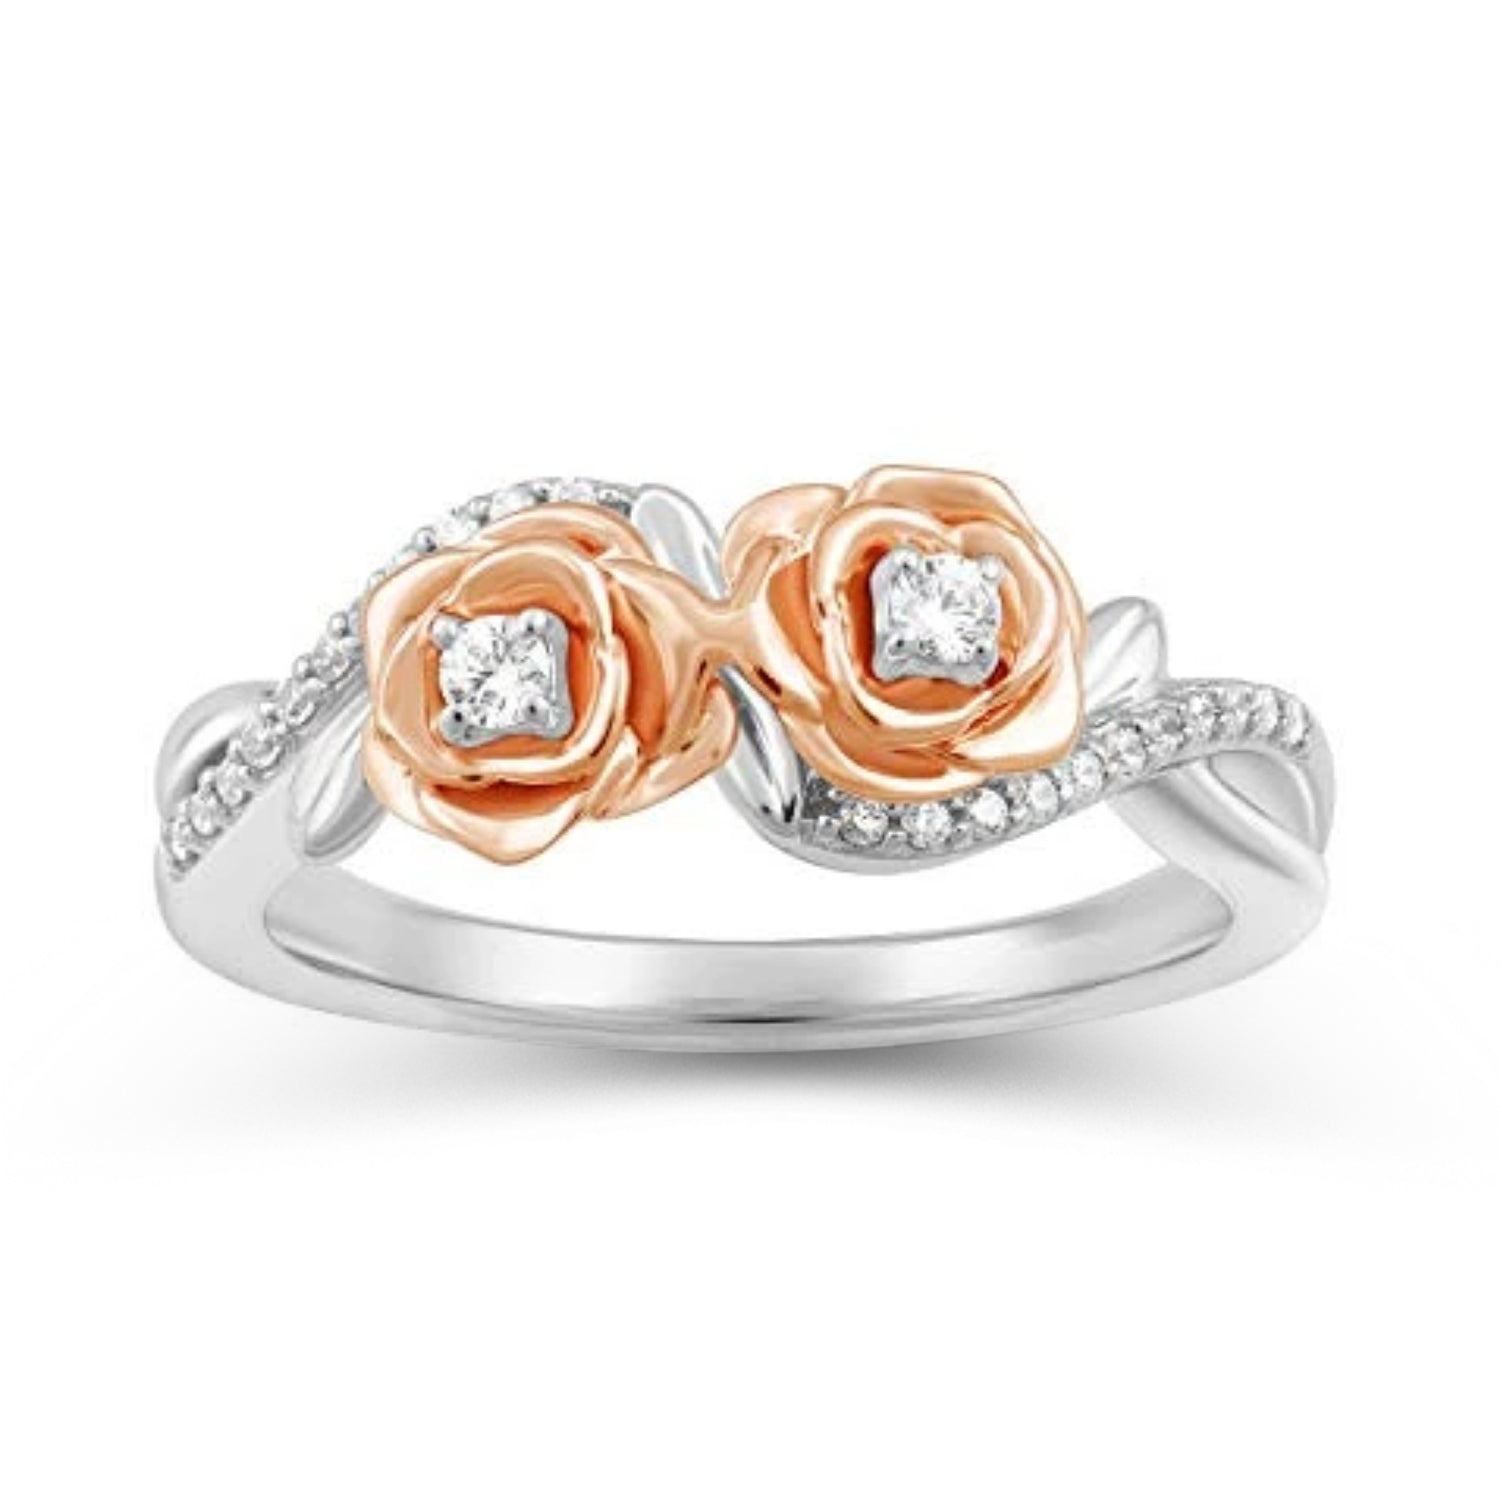 enchanted_disney-belle_rose_fashion_ring-rose_gold_plated_silver_1/6CTTW_2